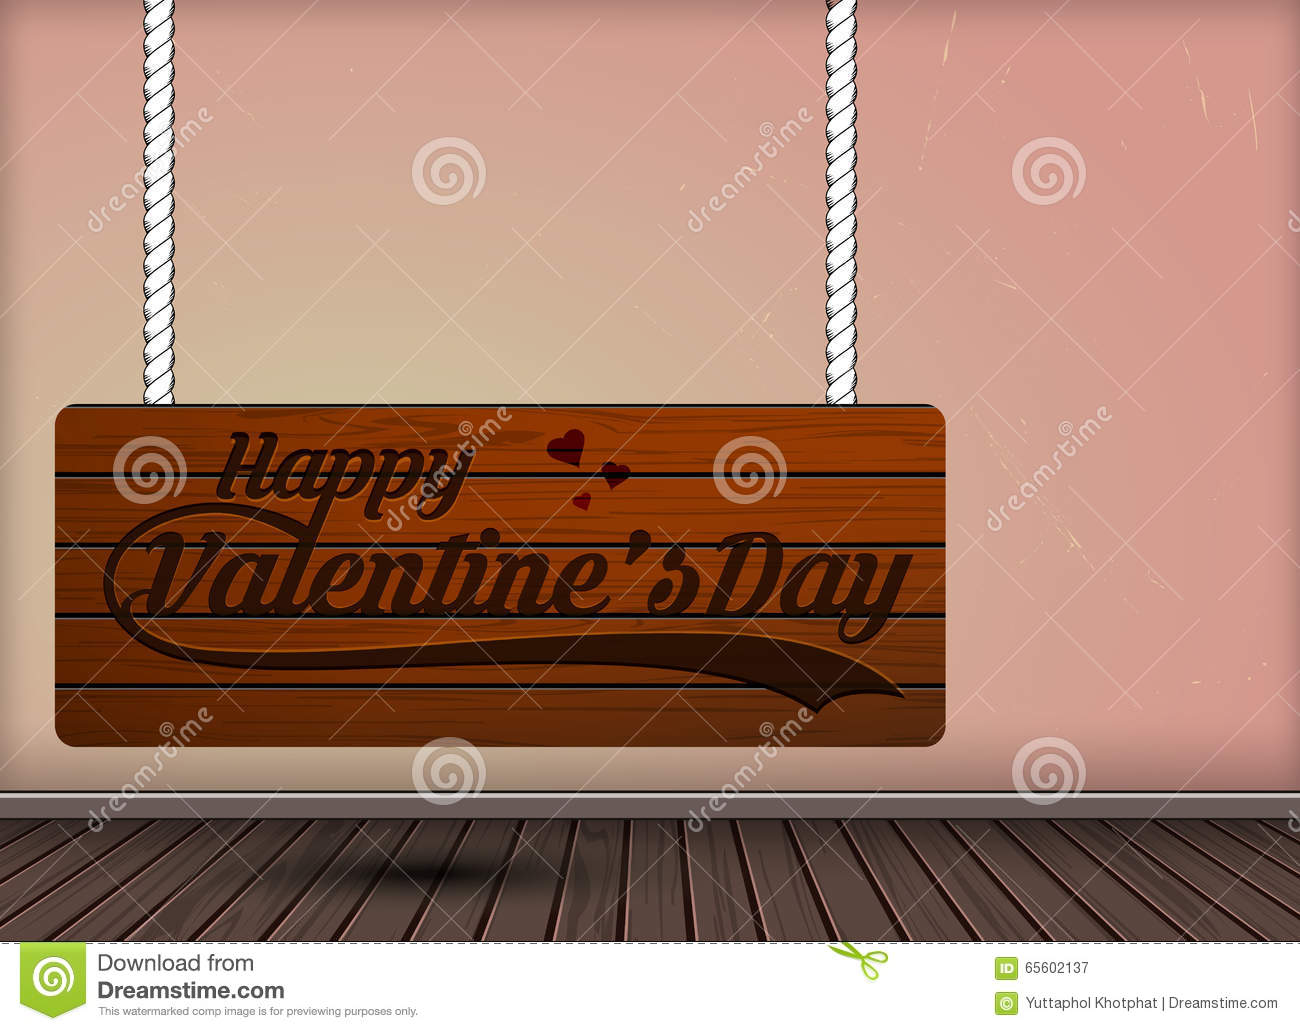 Happy Valentine Day Wooden Engraving On Hanging Signs Design Stock